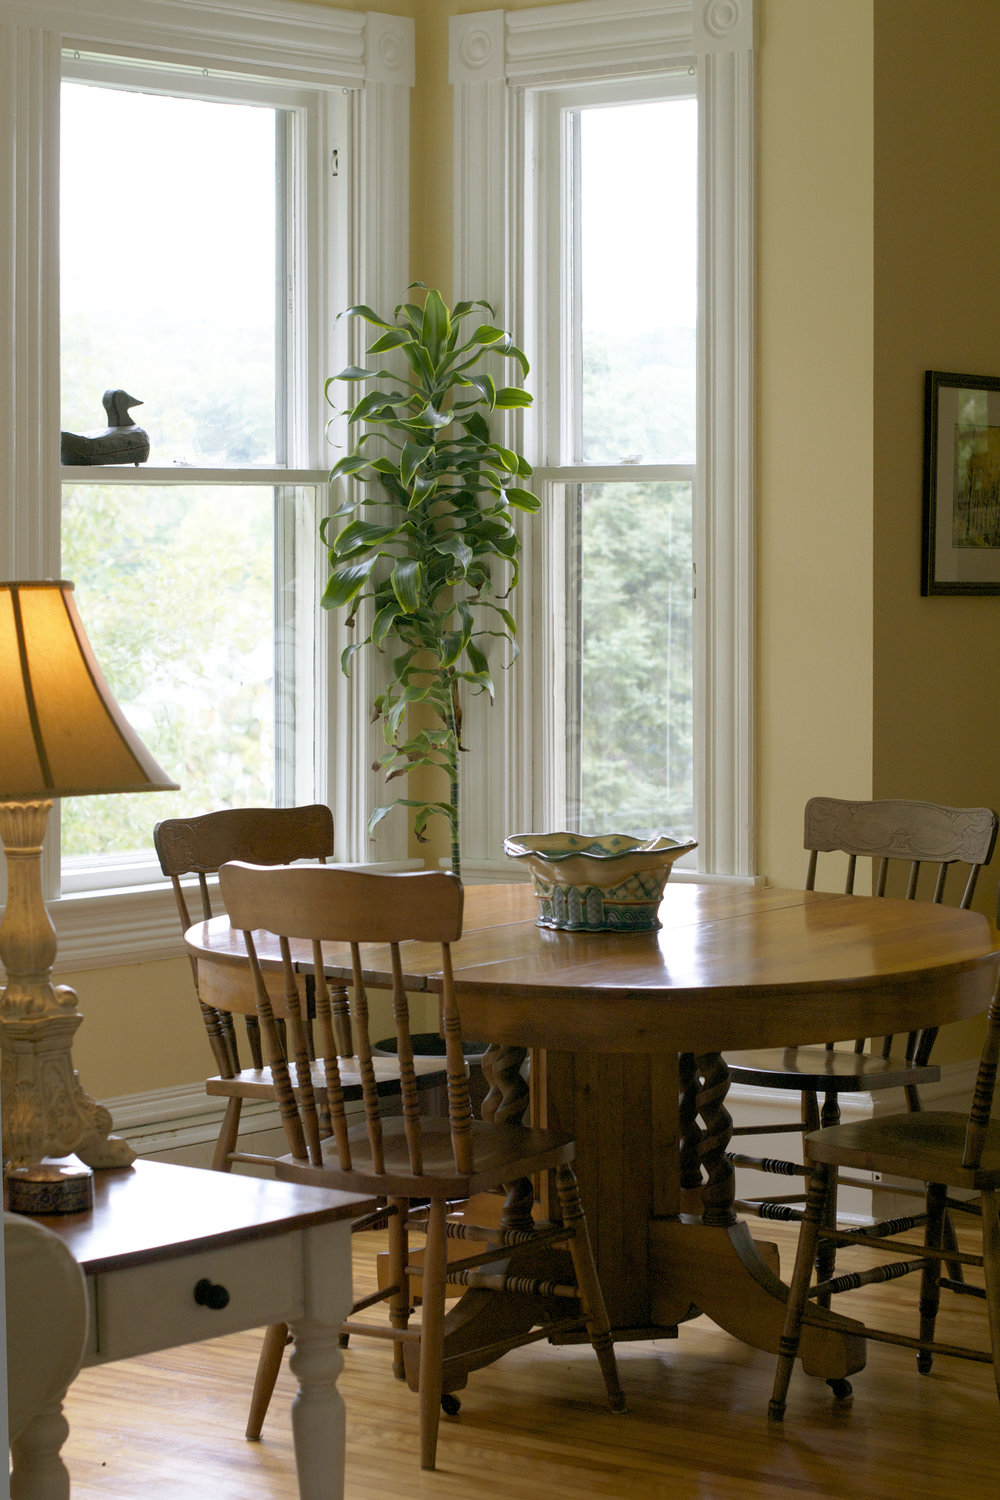 diningroom-round-table.jpg